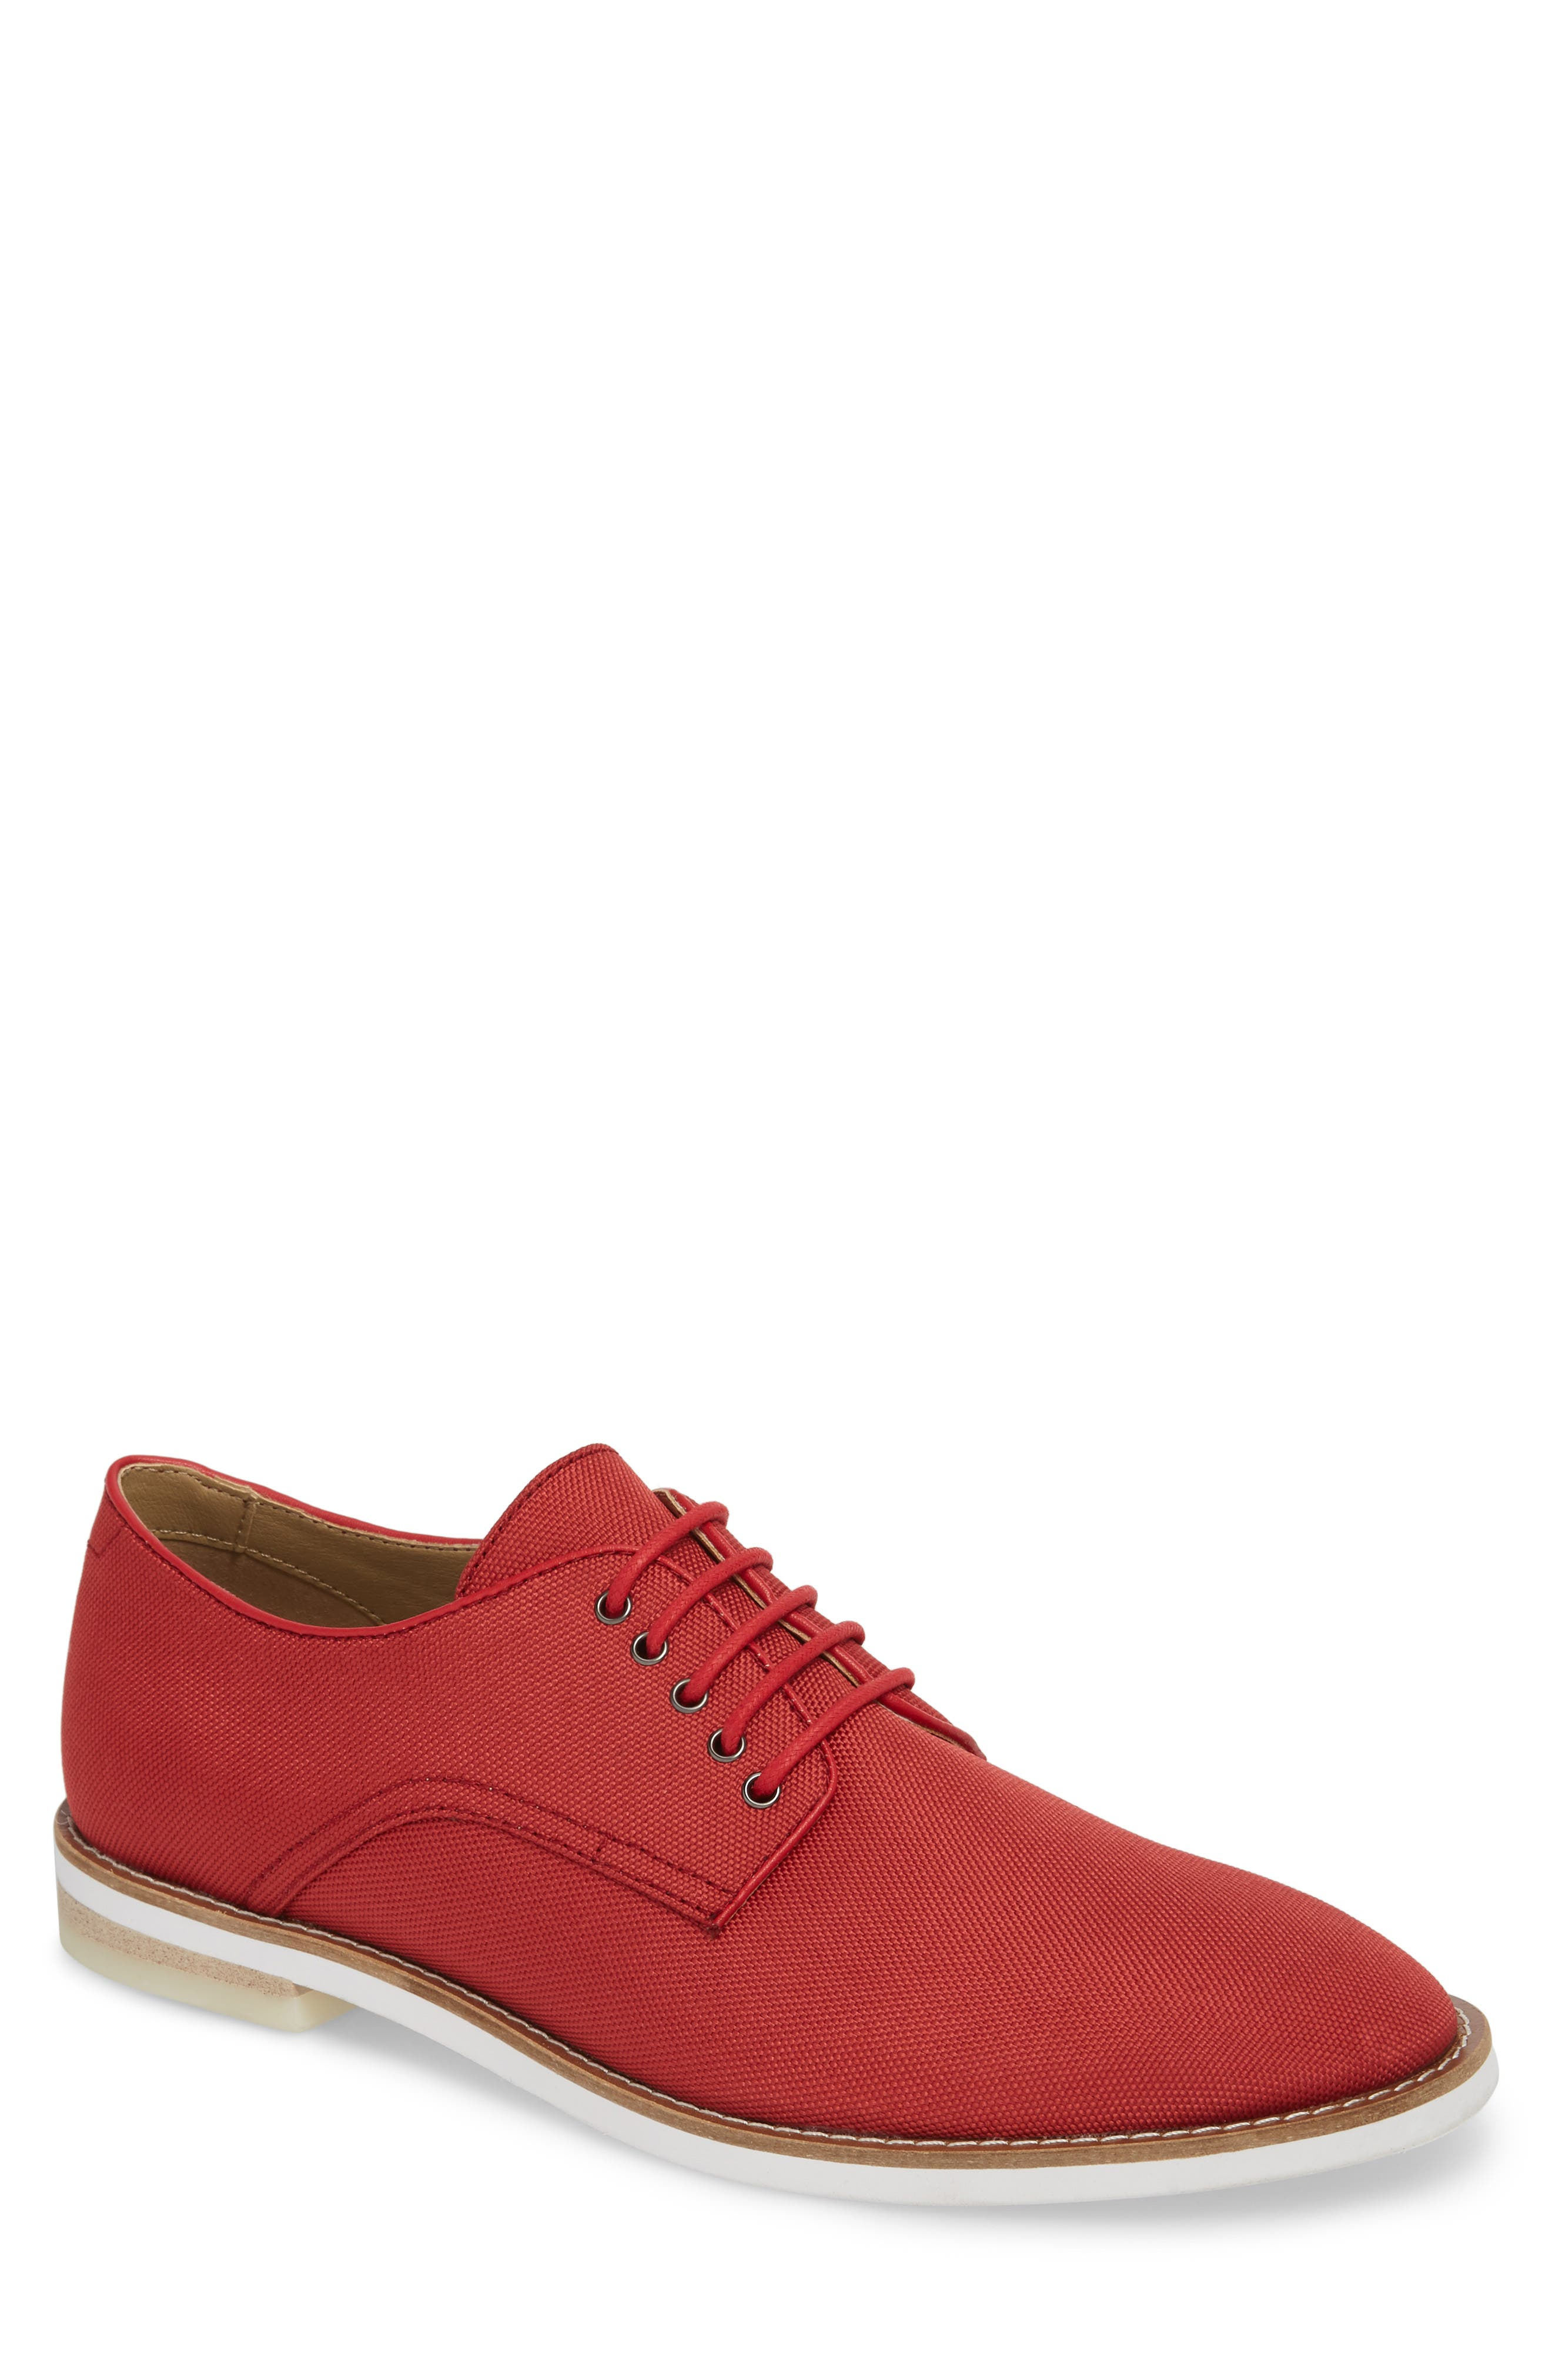 Atlee Plain Toe Derby,                         Main,                         color, Brick Red Nylon